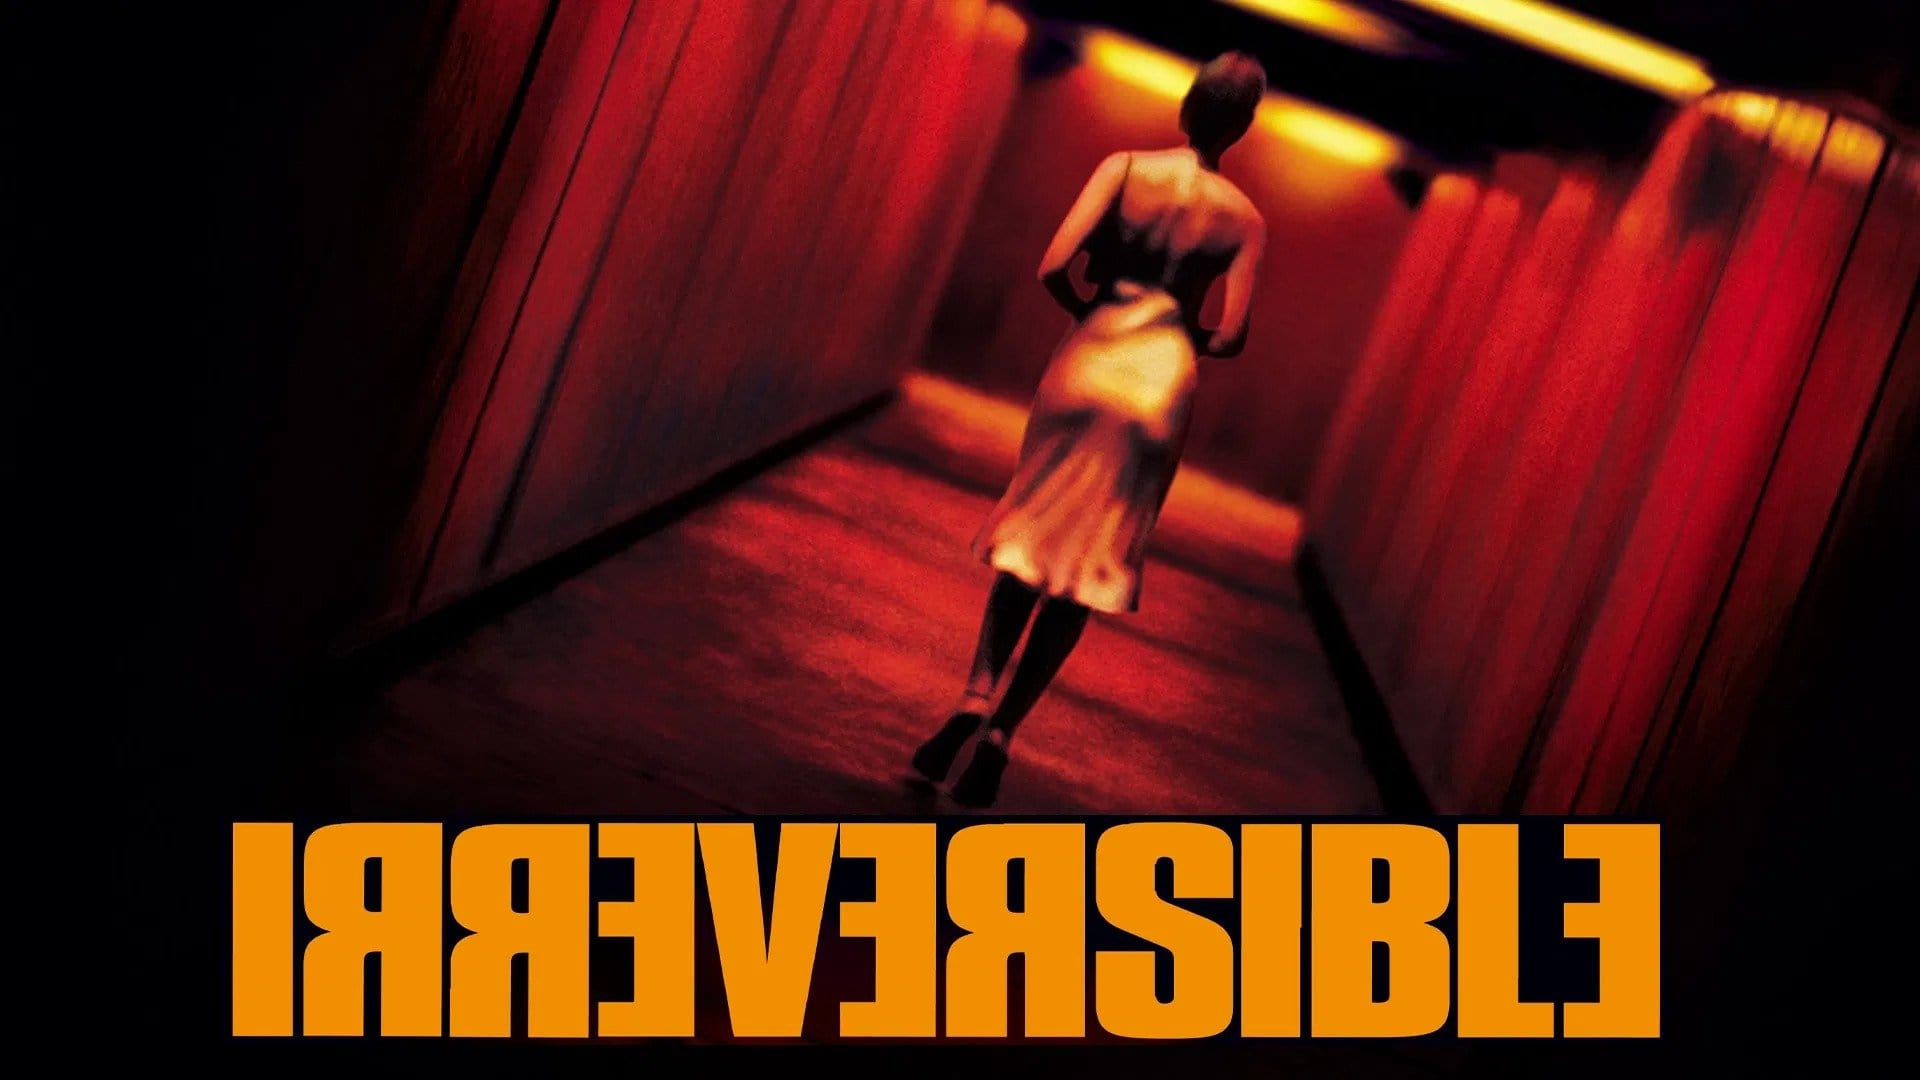 Irréversible (2002) Full Movie